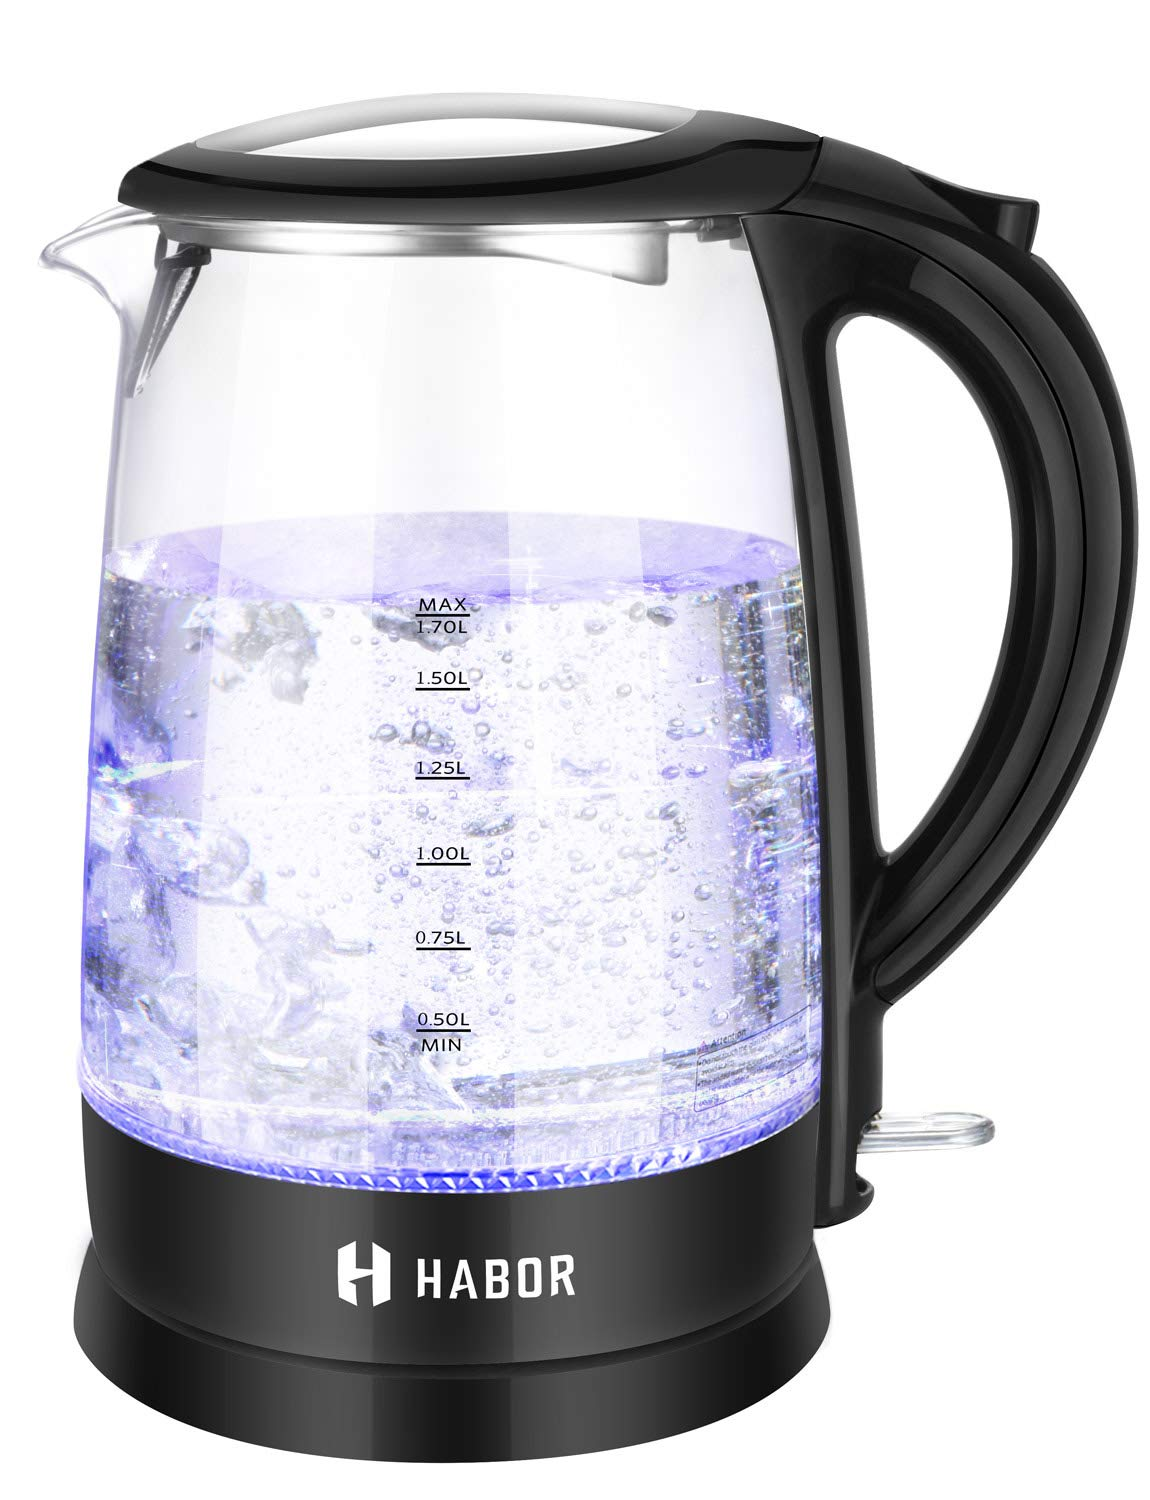 Habor 113 Electric Kettle (BPA Free), FDA Approved Water Boiler 1500W Fast Heating, 1.8 QT (1.7 L) Visible Blue Lights Bright Glass Body, Auto Shut-Off Boil-Dry Protection Stainless Steel Inner Lip